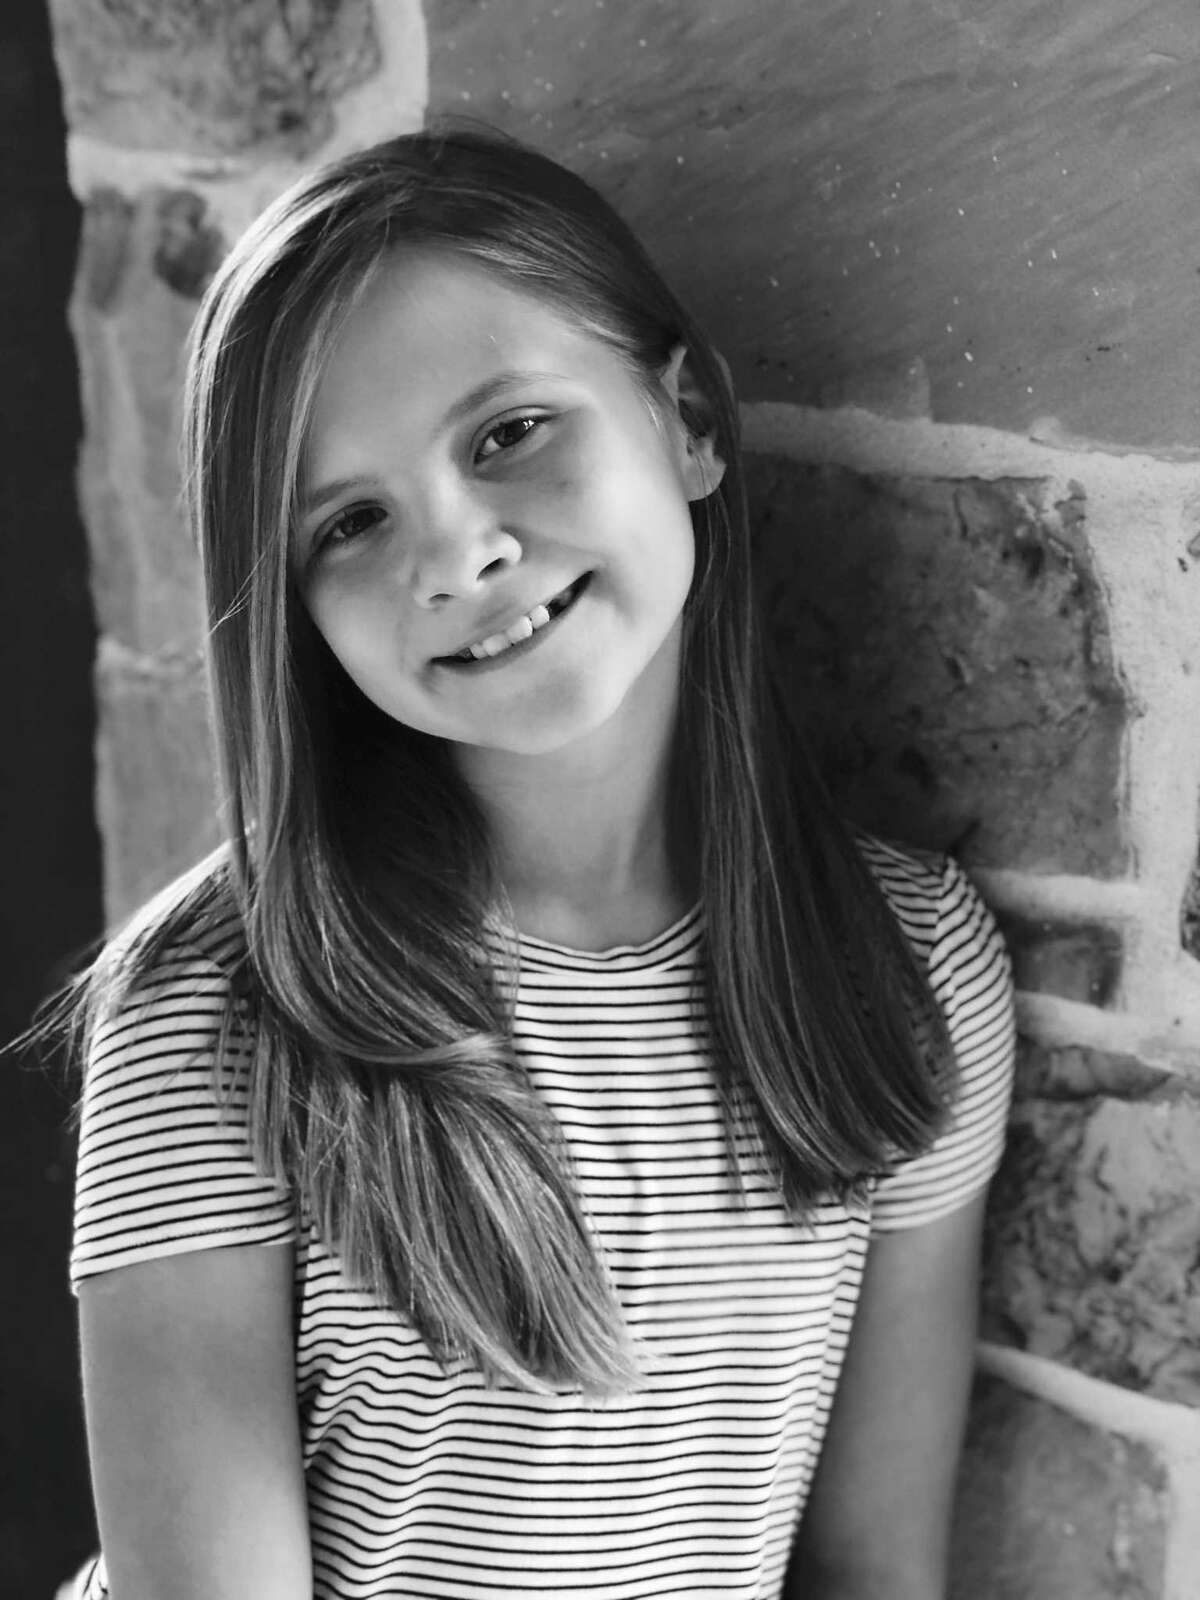 Hailey Caldwell, a Katy Independent School District student, is one of 78 student authors and illustrators to be honored at this years 9th Annual iWrite Luncheon & Book Signing Saturday, Oct. 27, at the Hyatt Regency in downtown Houston.